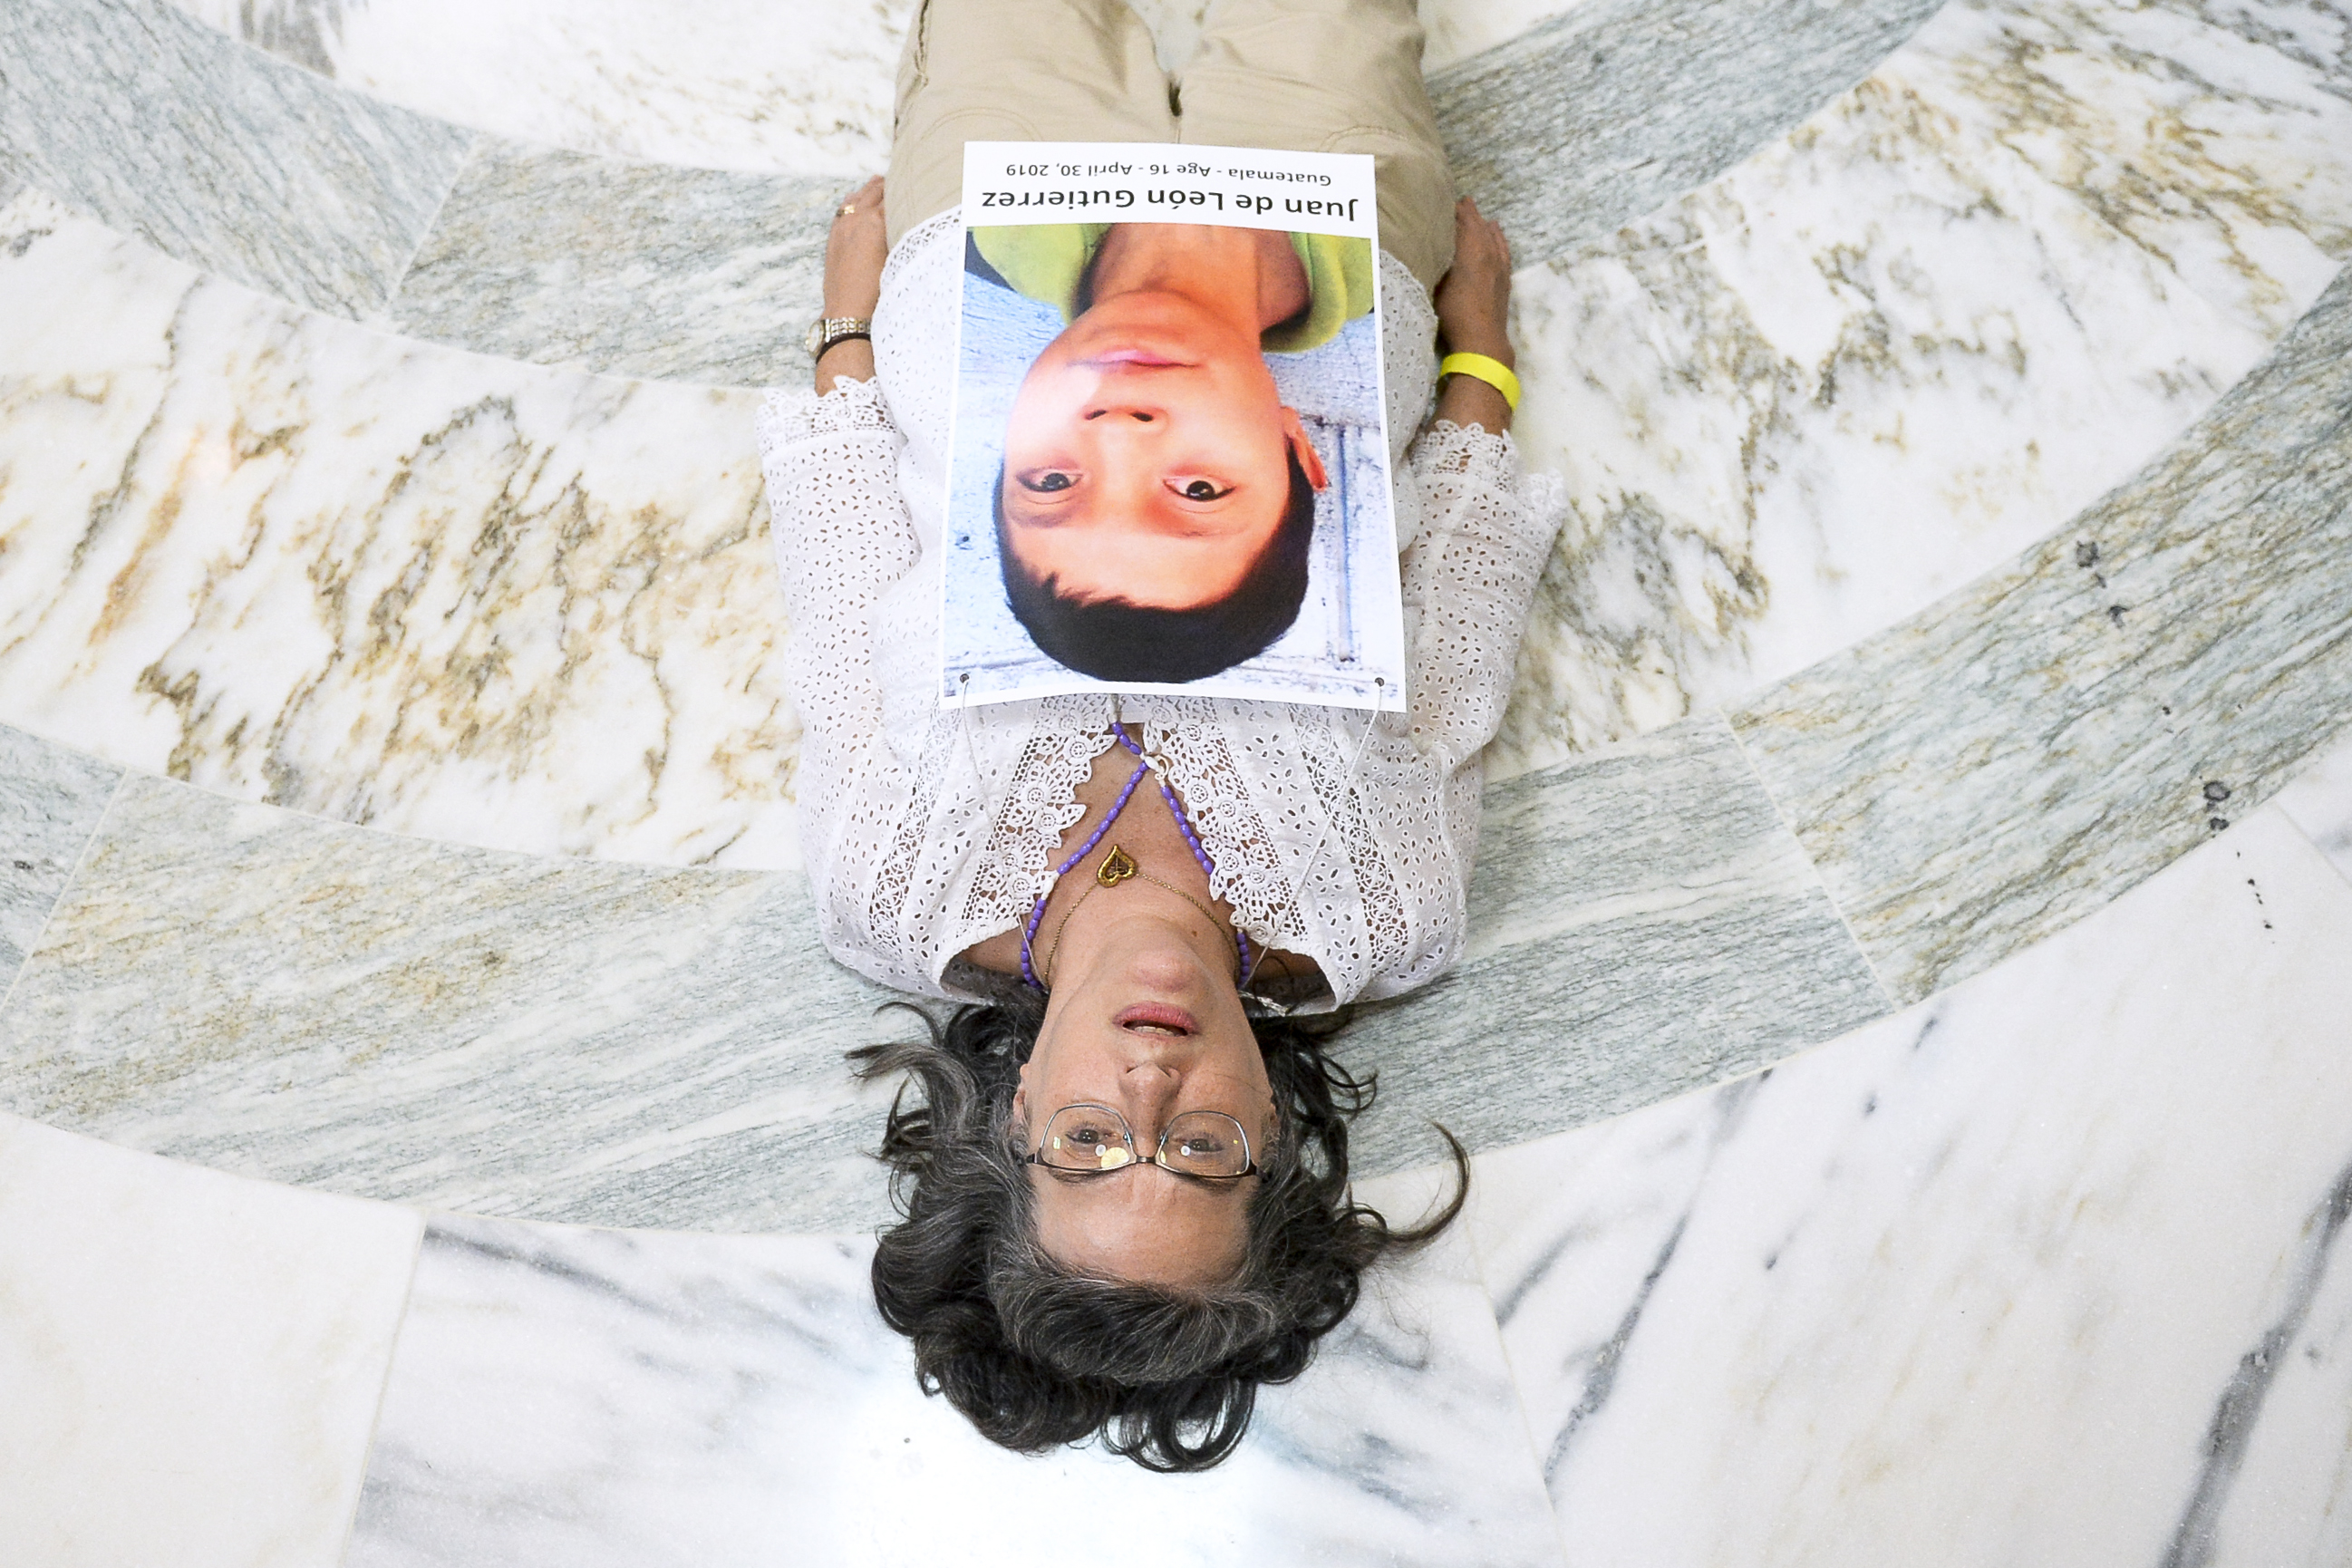 UNITED STATES - JULY 18: A woman a part of a coalition of Catholic activists lays on the ground as she protests to pressure the Trump administration and Congress to end the practice of detaining immigrant children in the Russell Rotunda at the Capitol on Thursday July 18, 2019. (Photo by Caroline Brehman/CQ Roll Call)